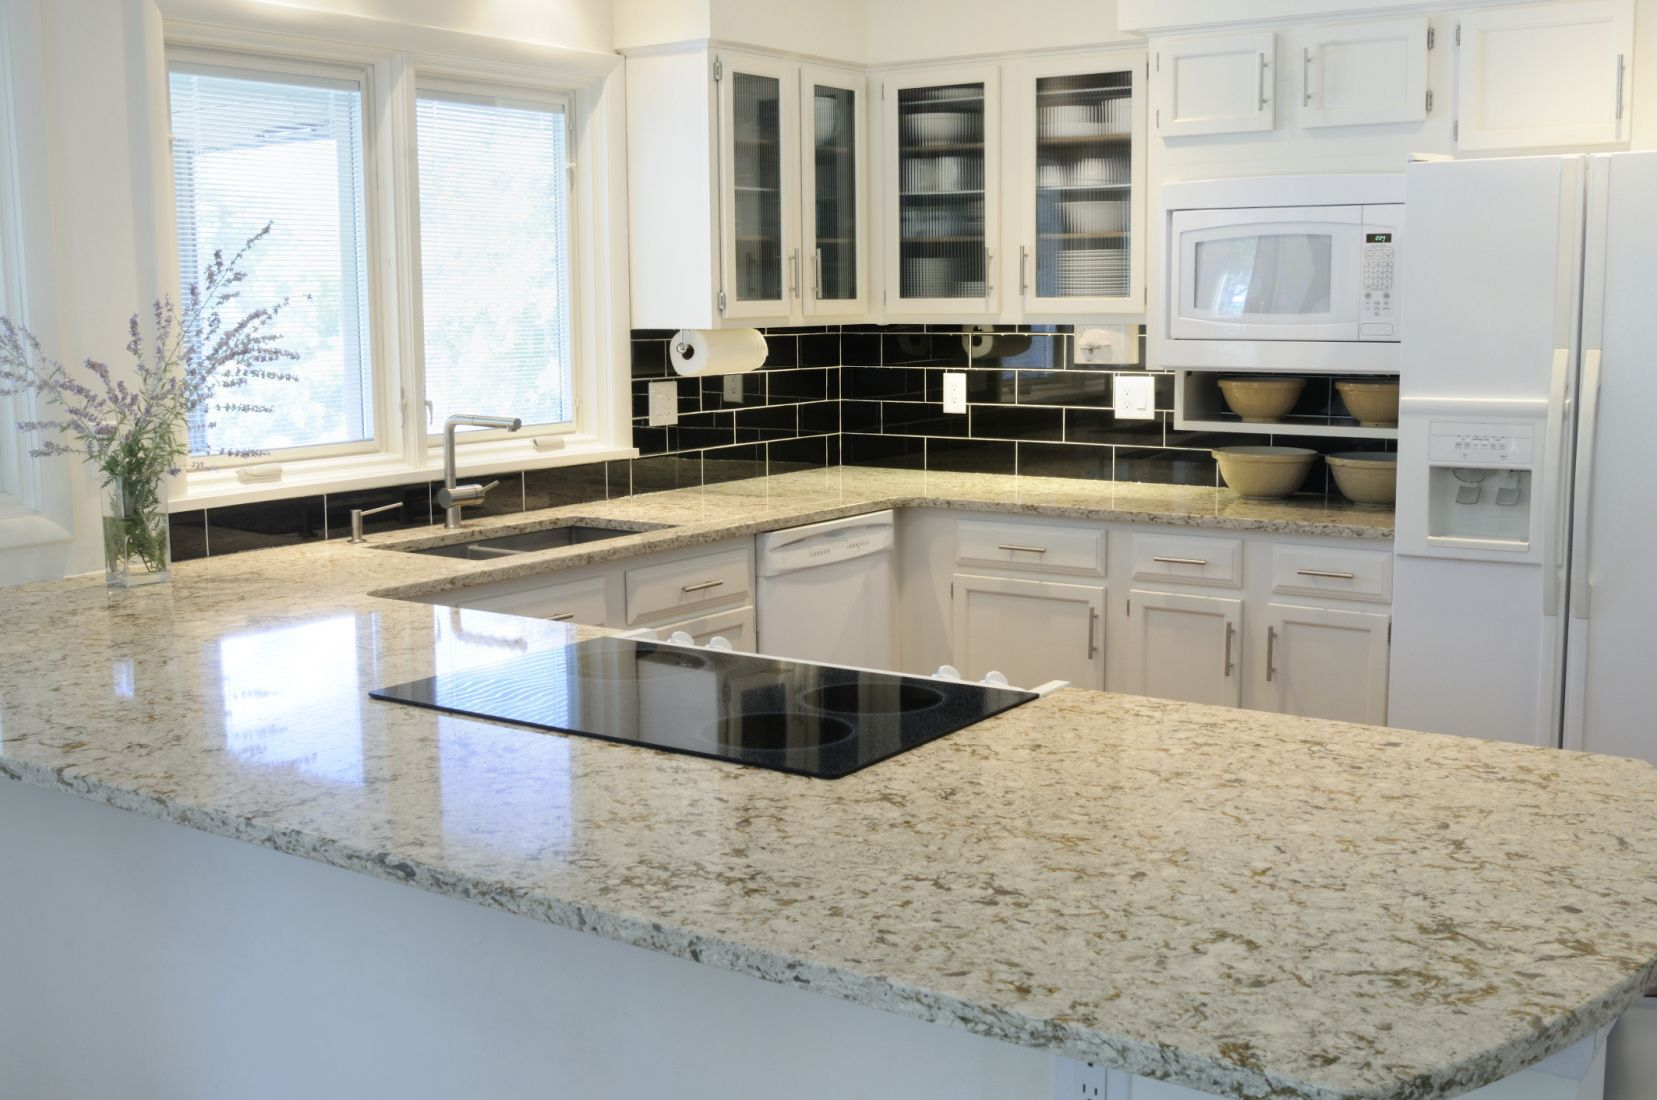 55 Average Cost Of Granite Countertops Per Square Foot Installed